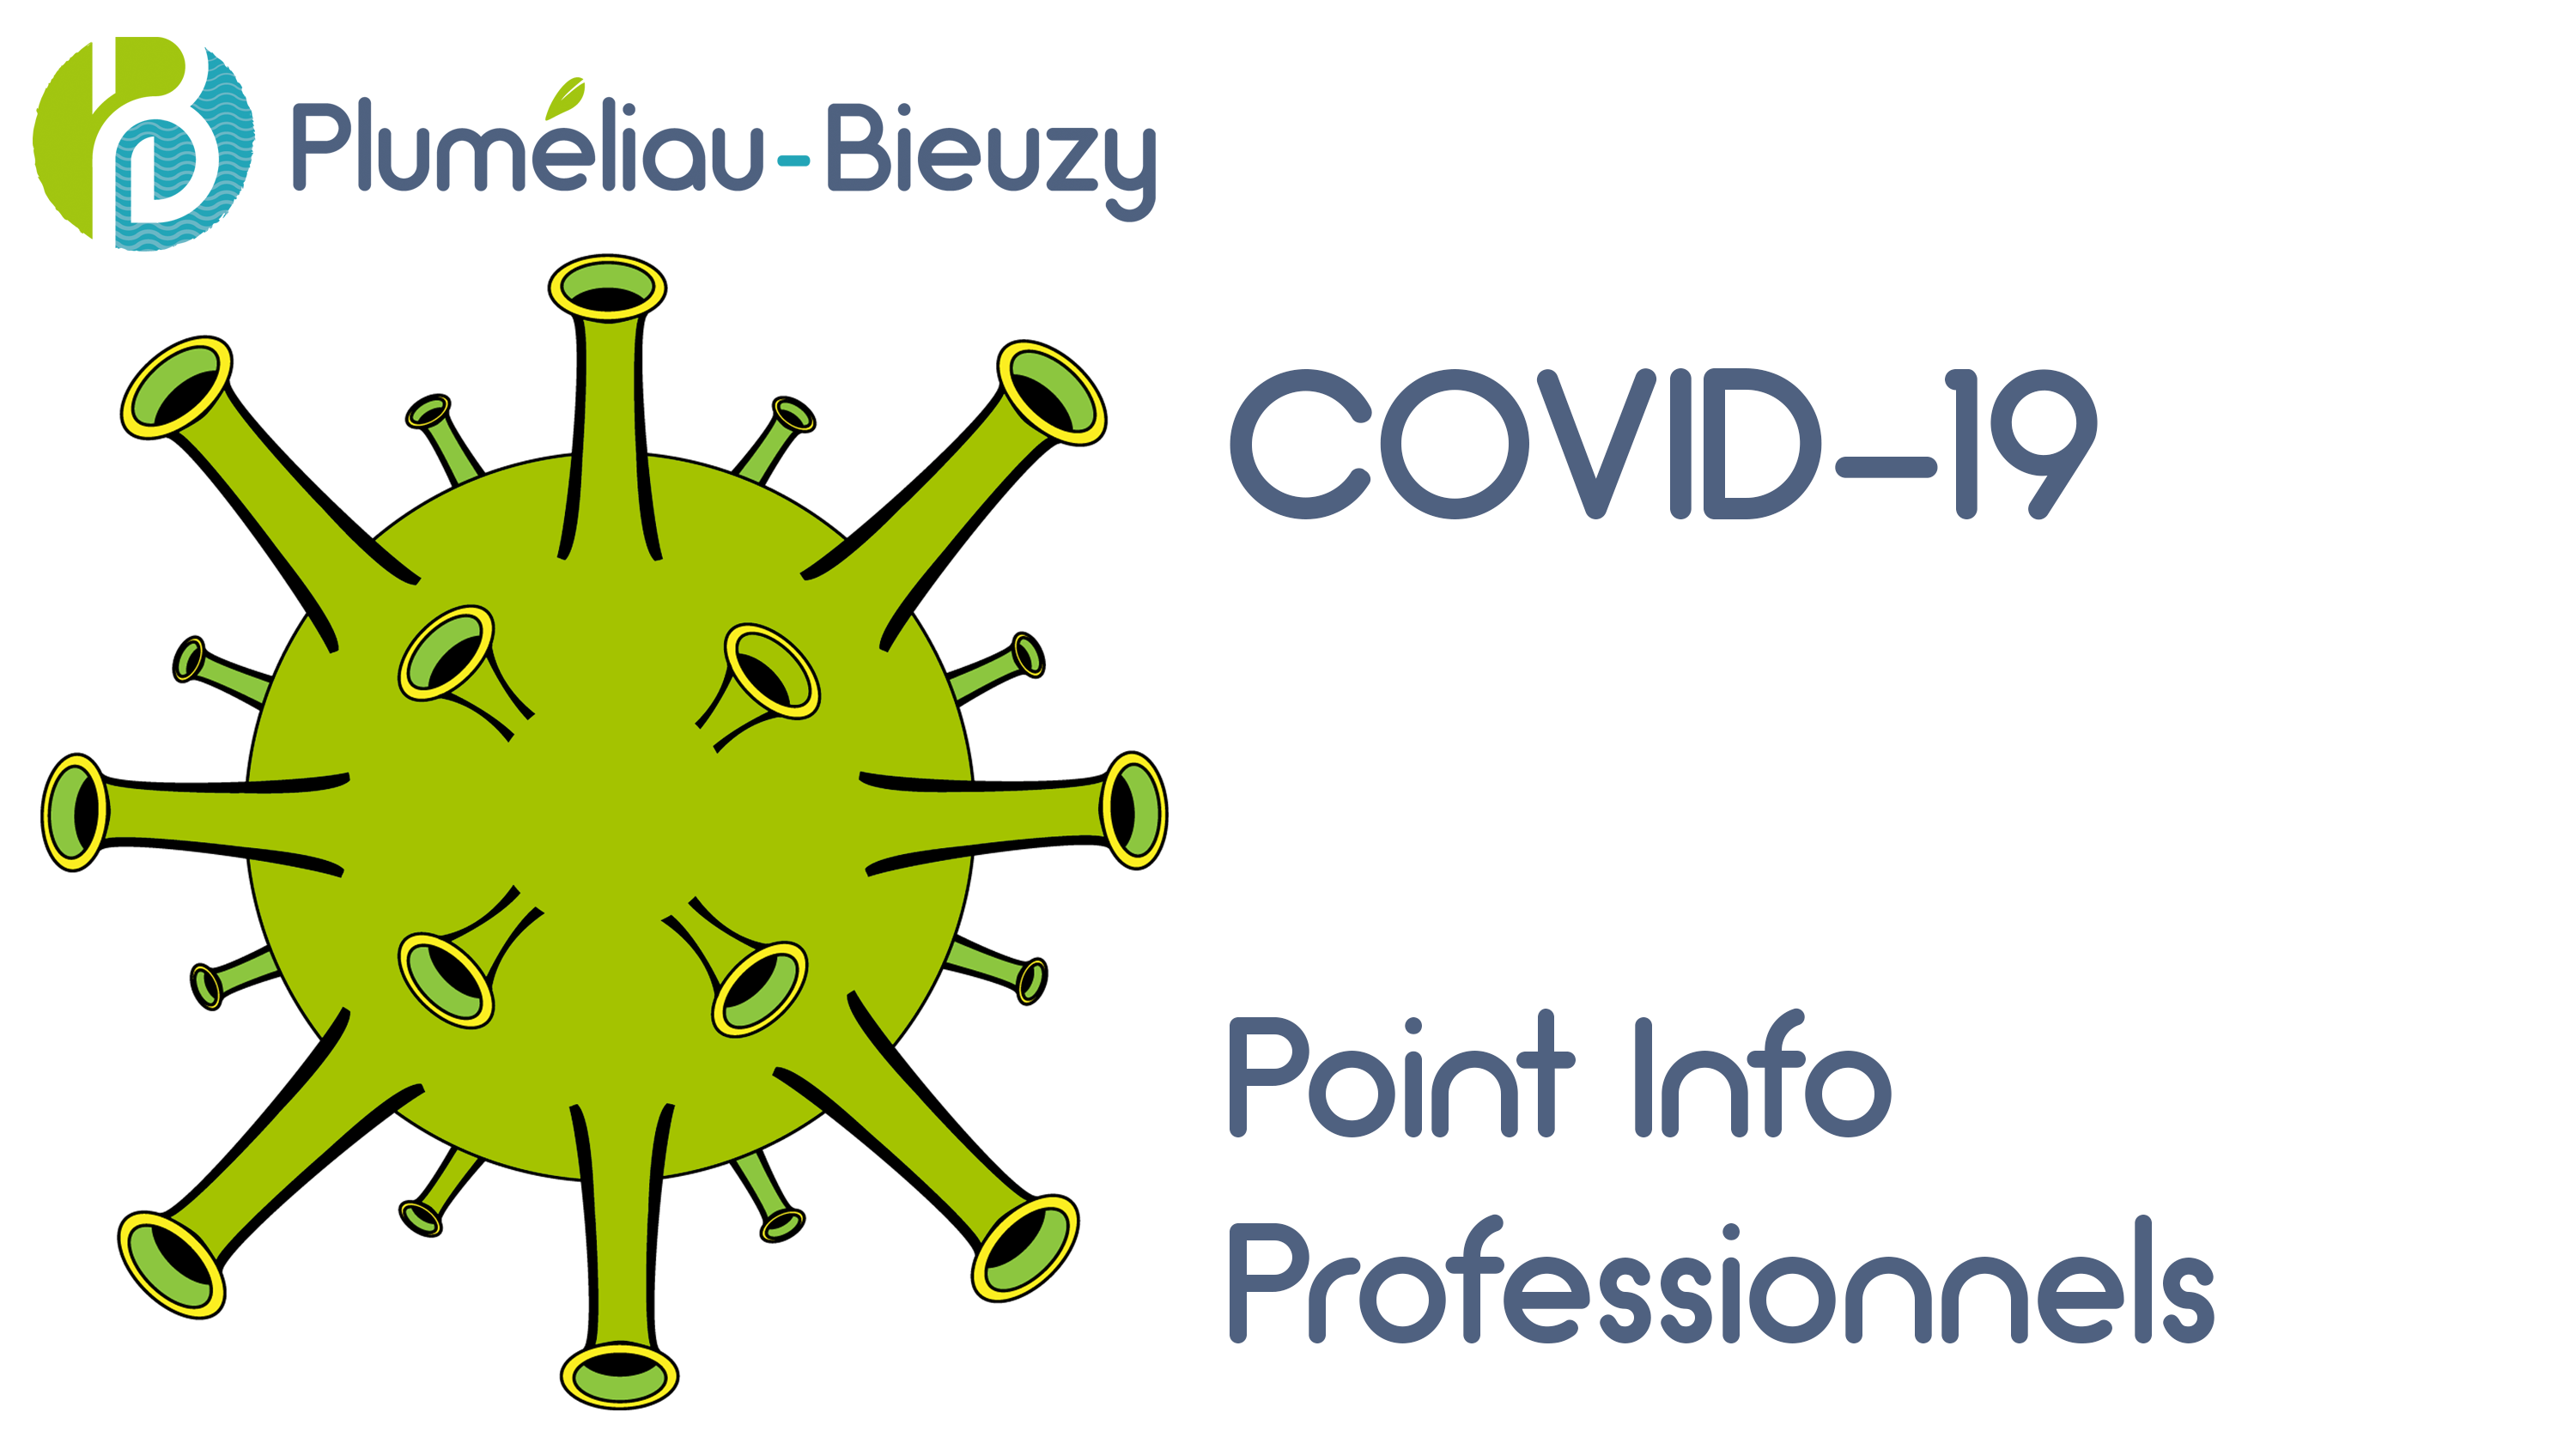 COVID-19 Point Info Professionnels